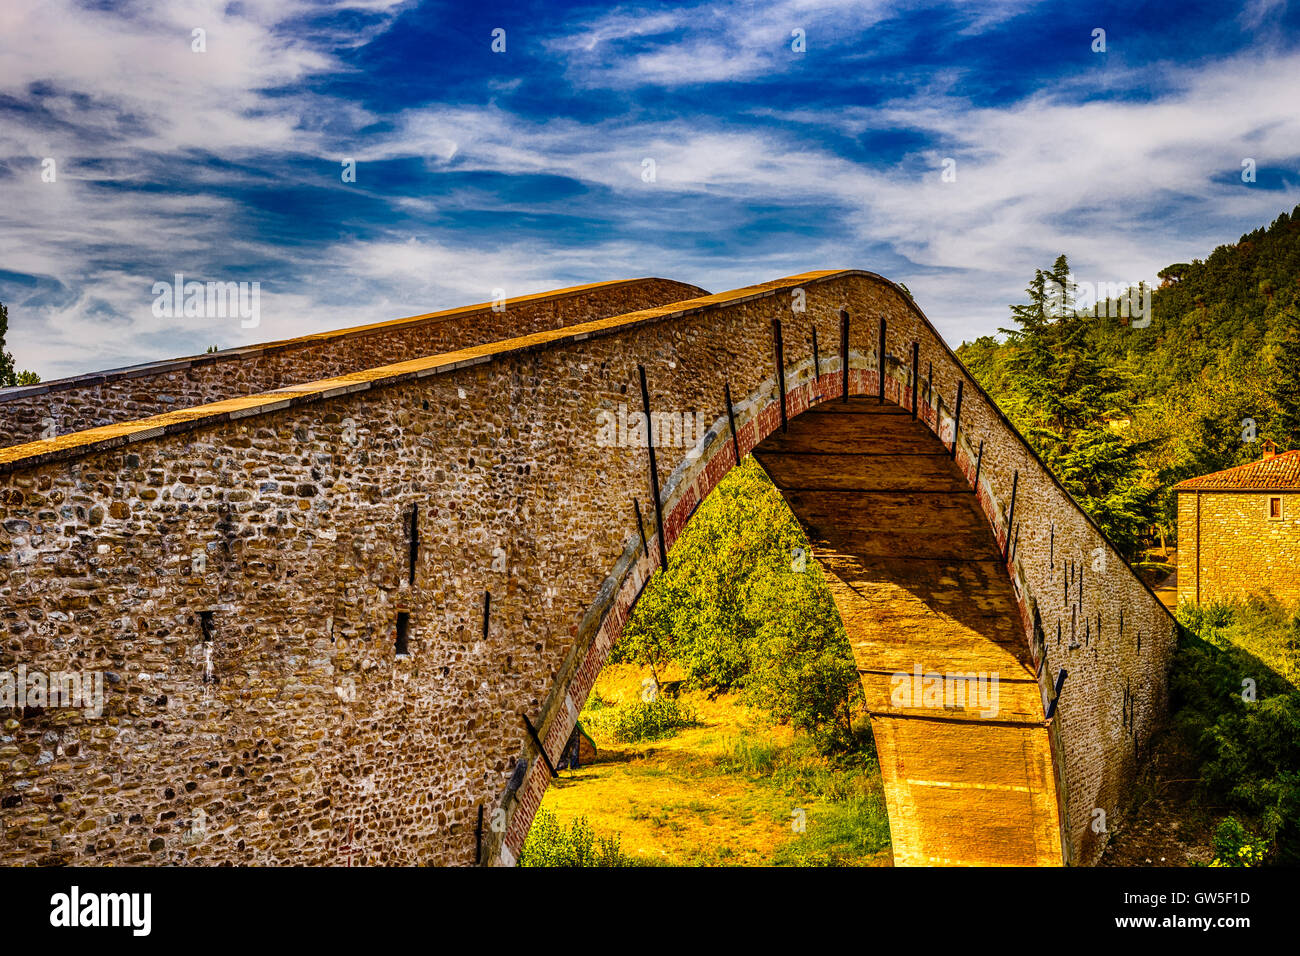 Ancient hunchback bridge in Emilia Romagna - Stock Image